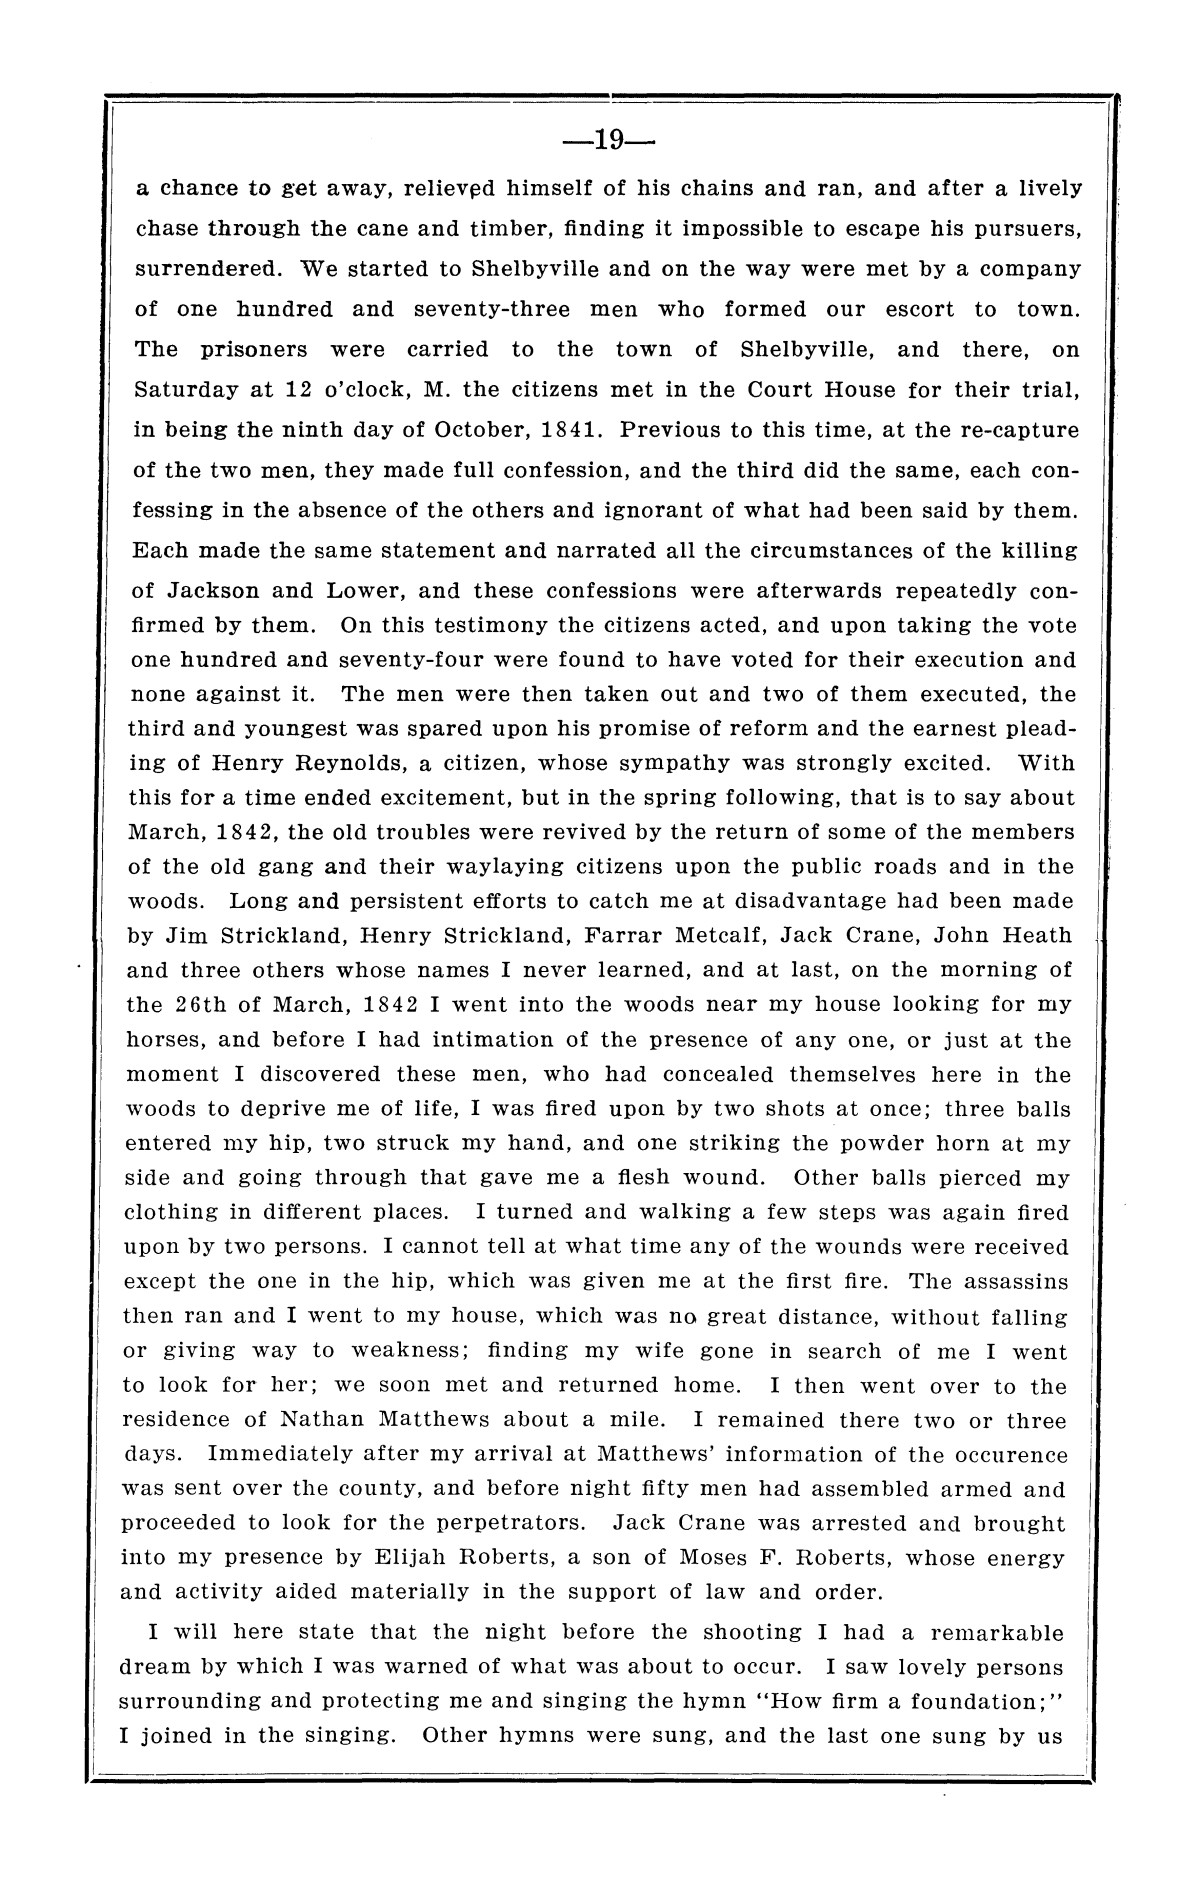 History of the regulators and moderators and the Shelby County war in 1841 and 1842, in the republic of Texas, with facts and incidents in the early history of the republic and state, from 1837 to the annexation, together with incidents of frontier life and Indian troubles, and the war on the reserve in Young County in 1857                                                                                                      [Sequence #]: 21 of 42